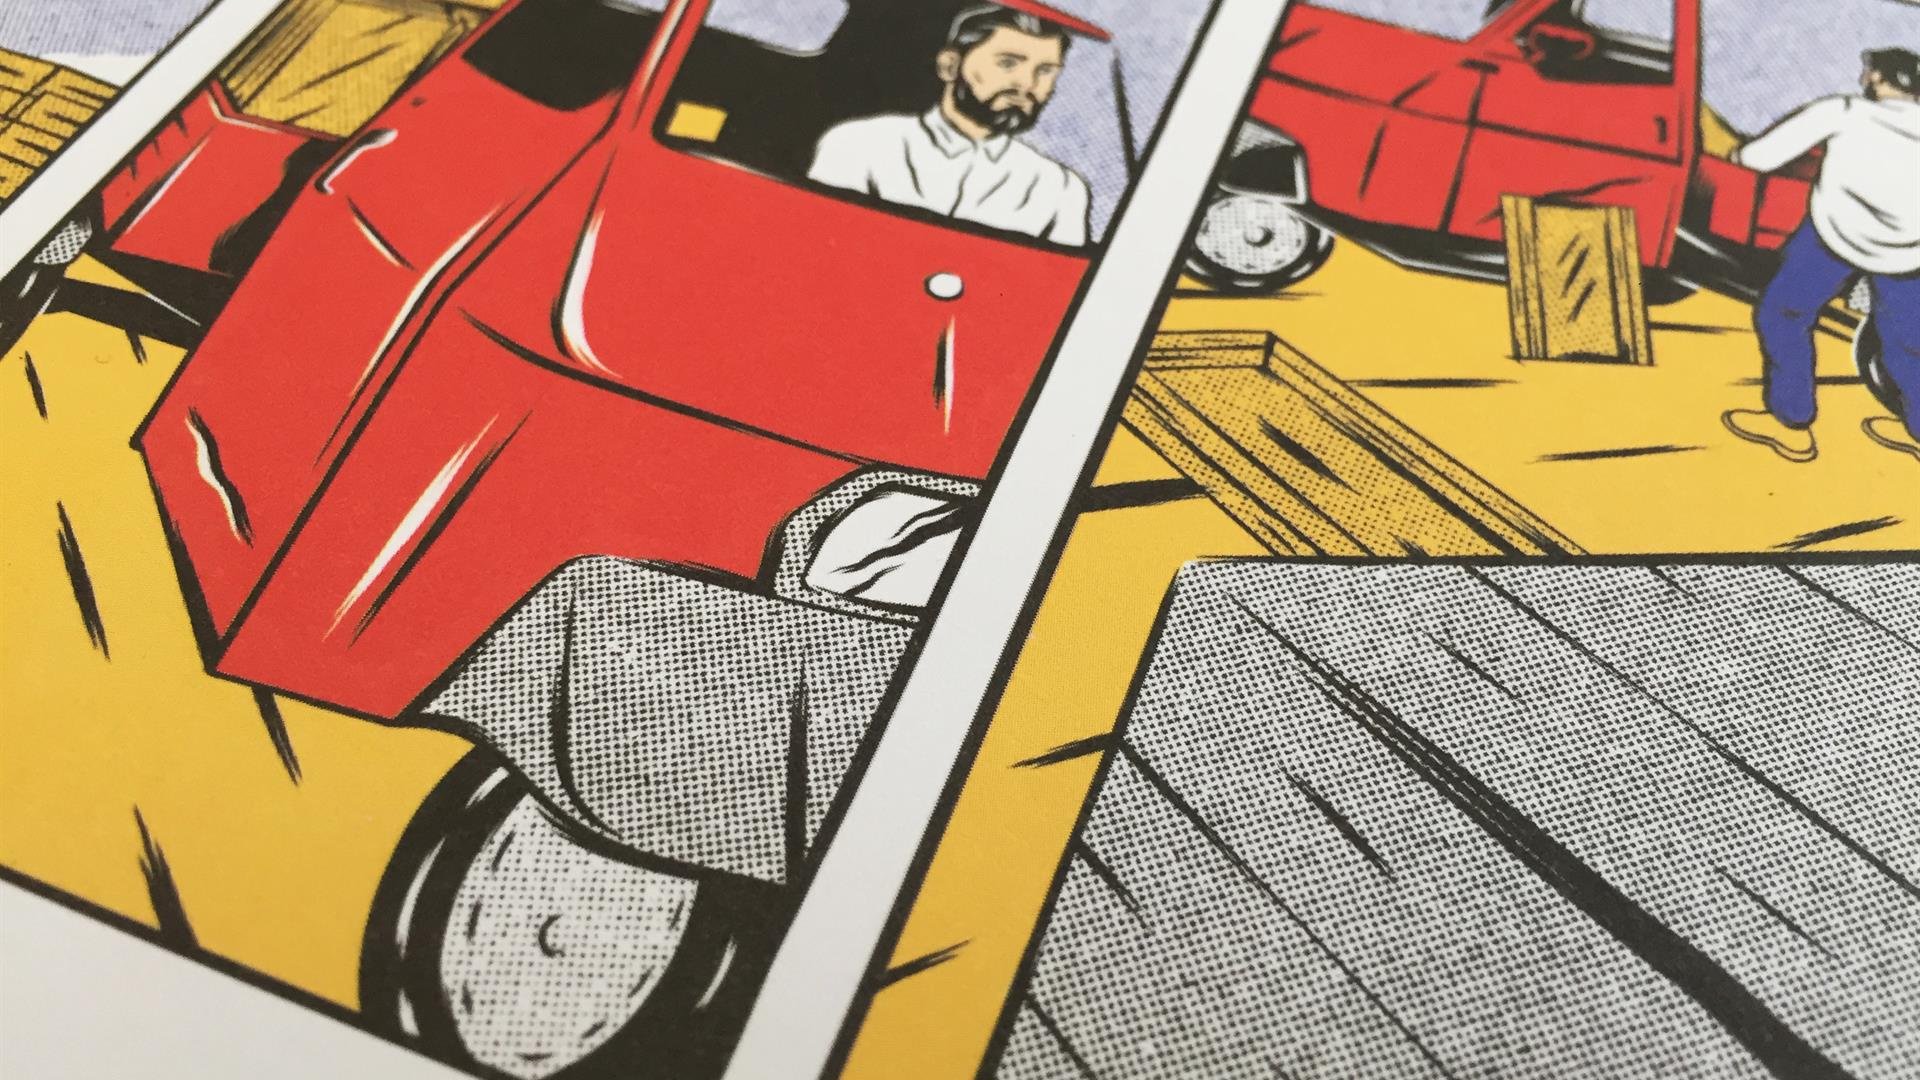 cover detail